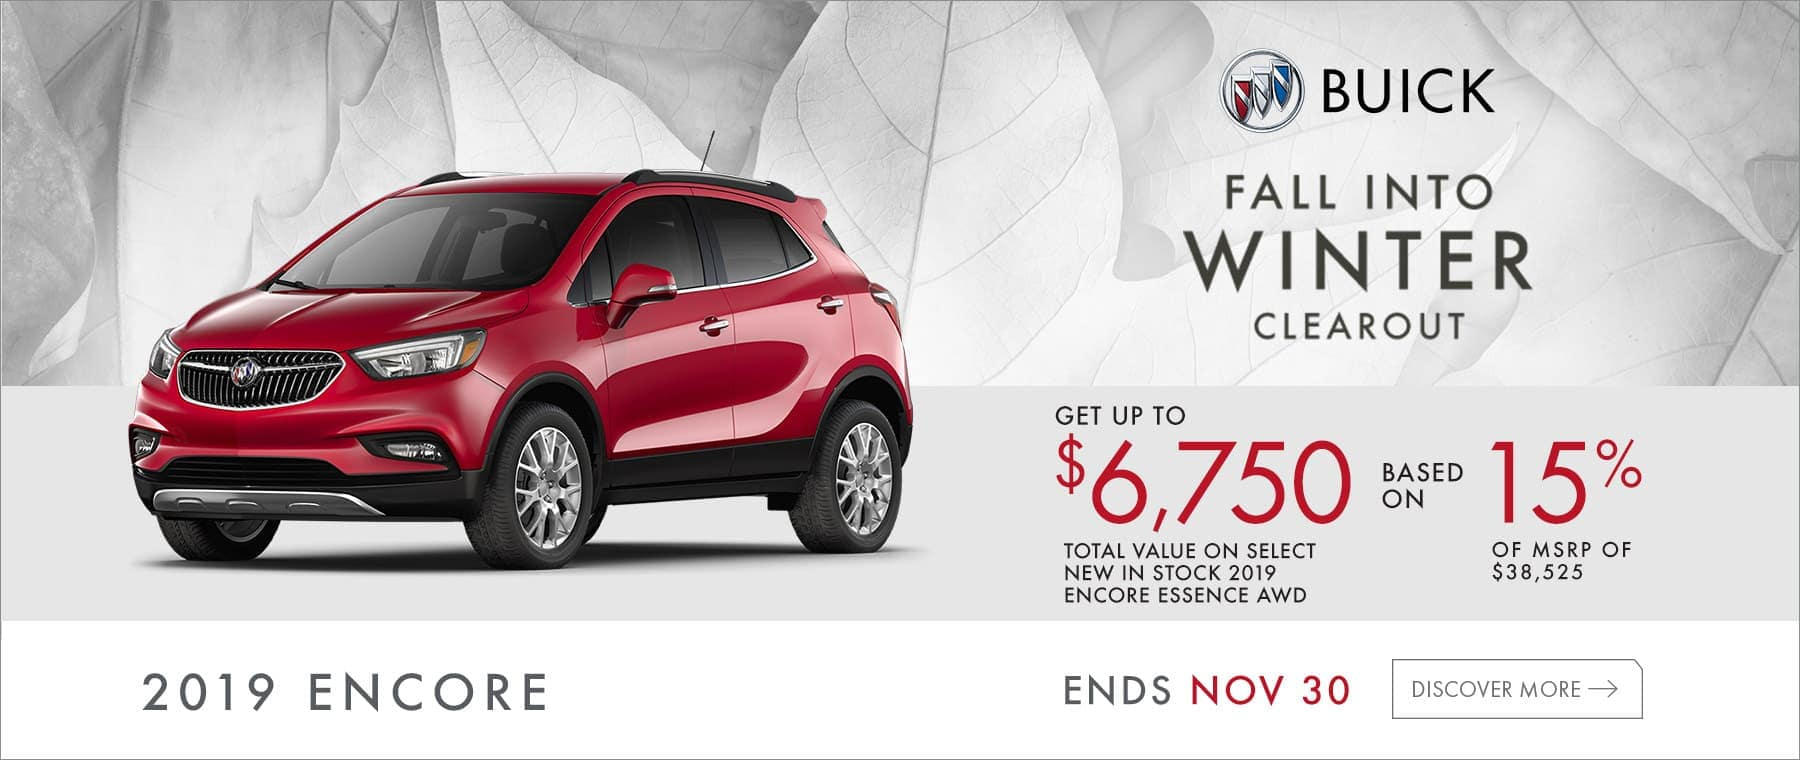 Fall into winter clearout. Get up to $6,750 total value on select new in stock 2019 Encore Enssence AWD based on 15% of MSRP of $38,525. Displayed red 2019 Encore